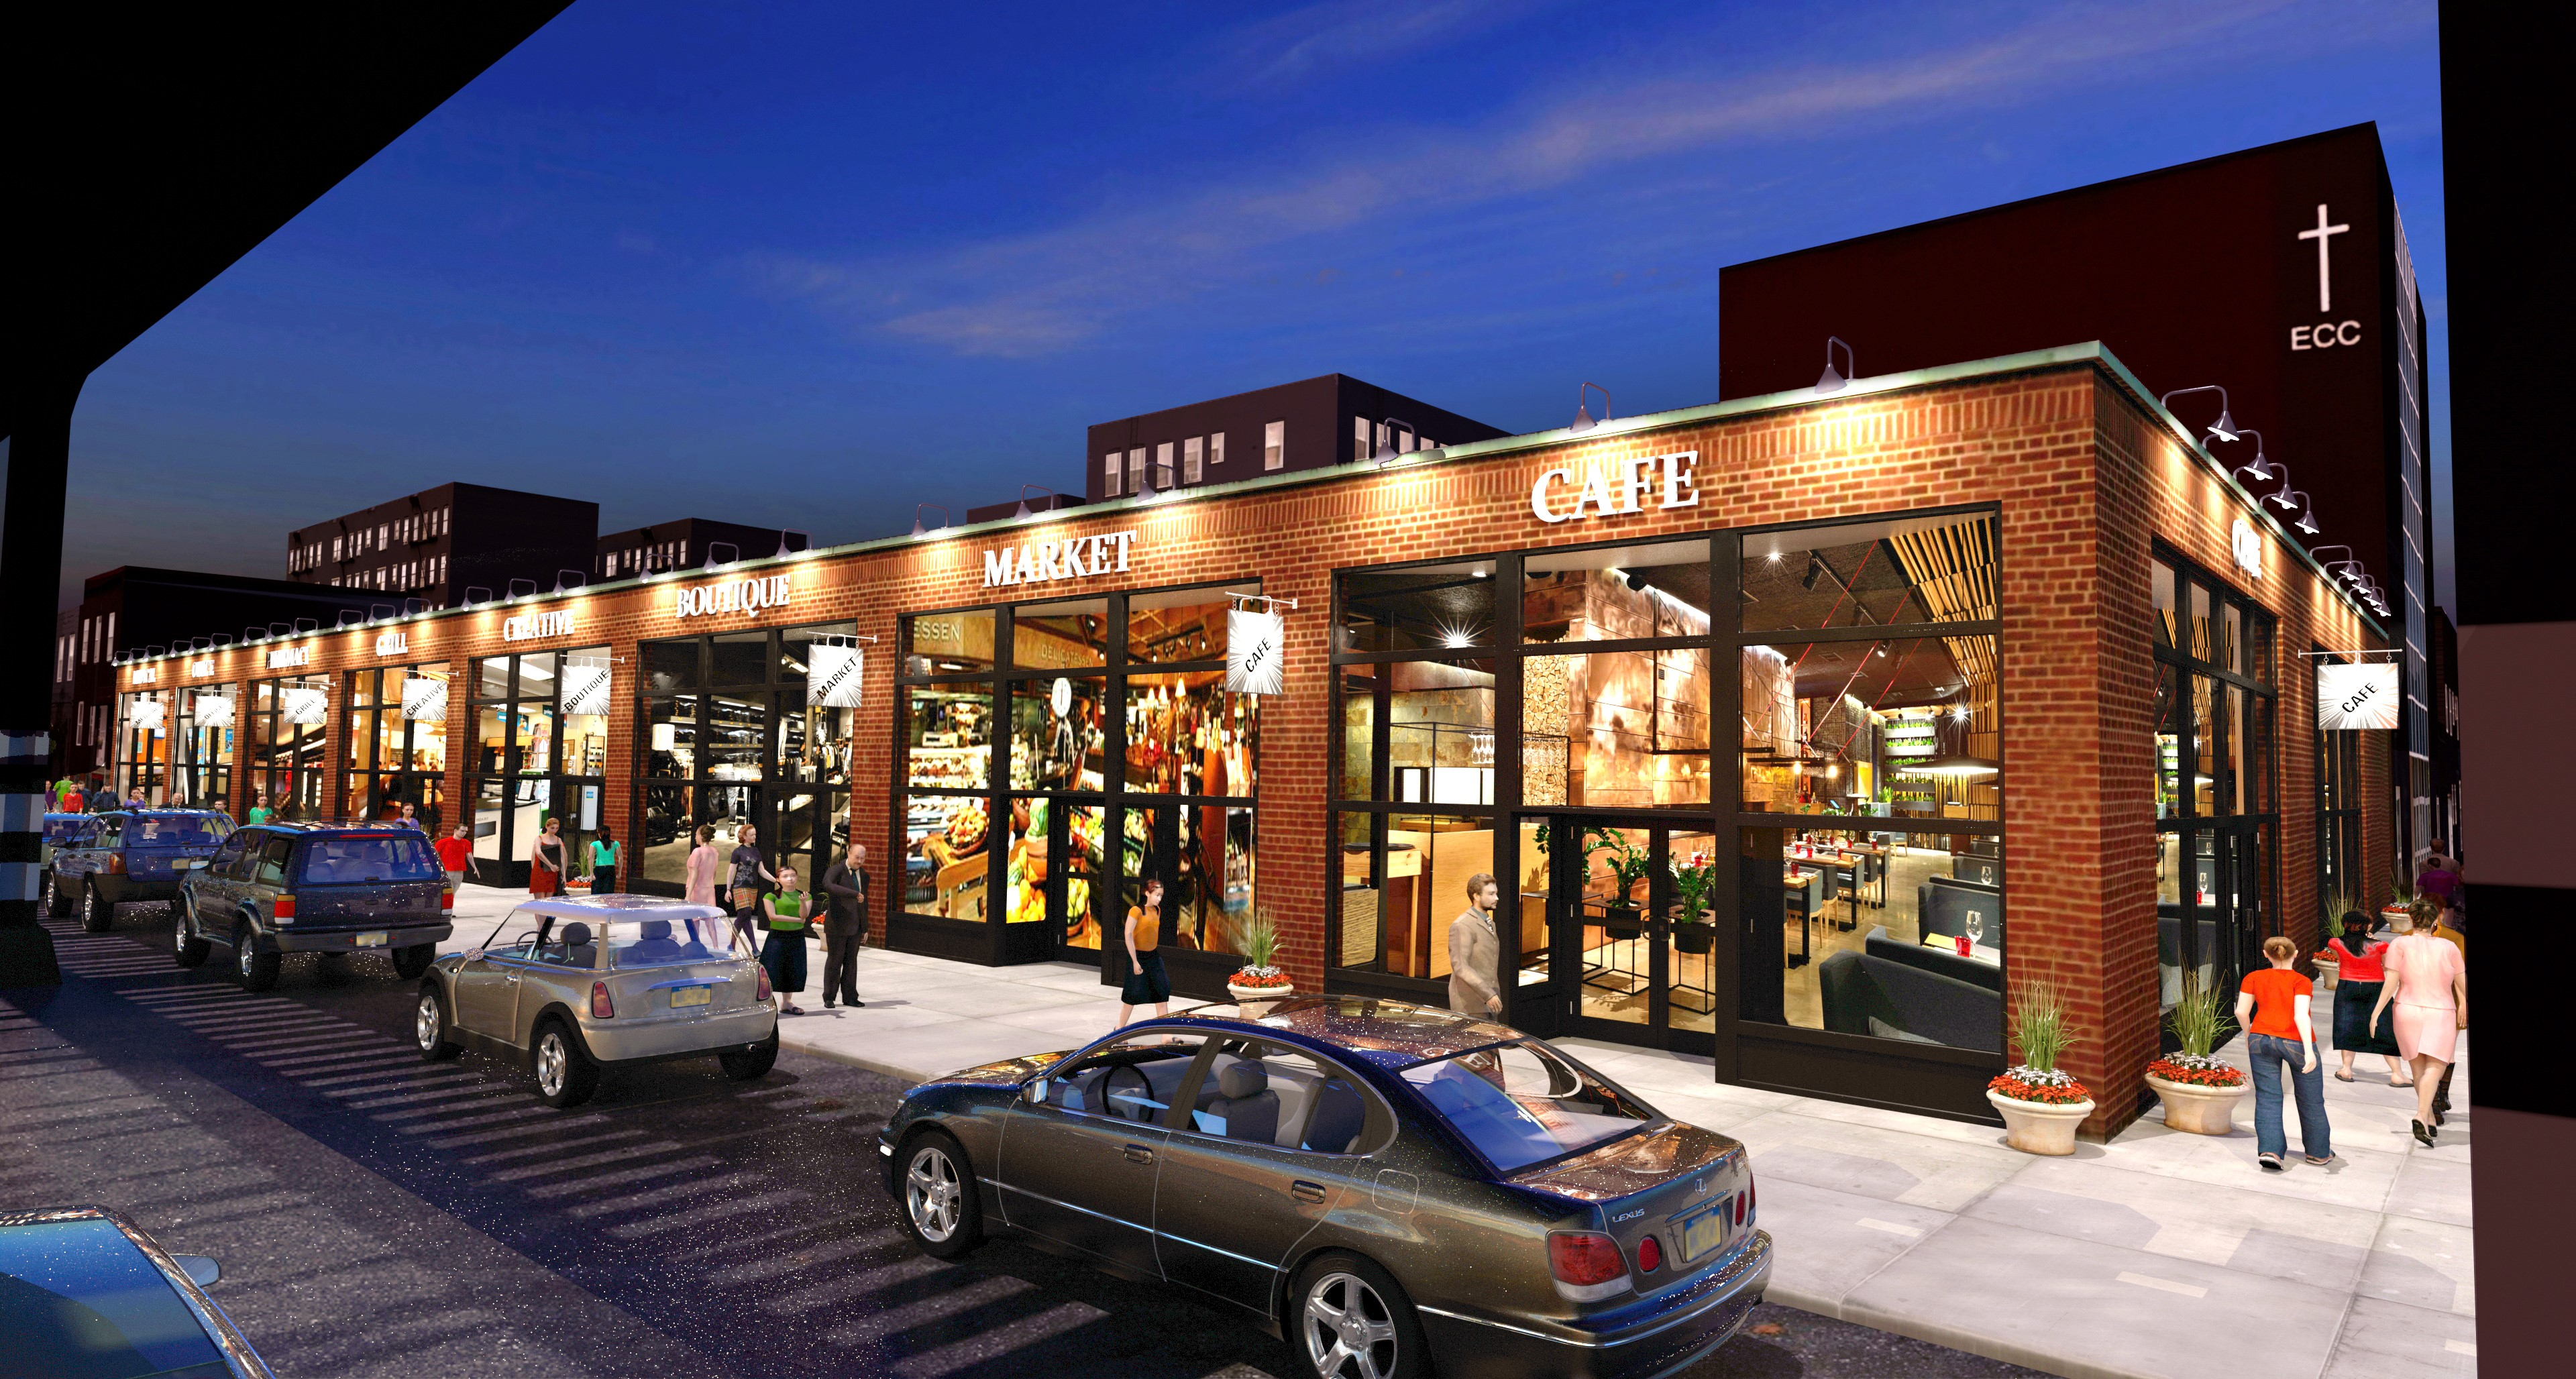 Astoria's International Food Hall Arrives This Fall With Nearly a Dozen New Restaurants